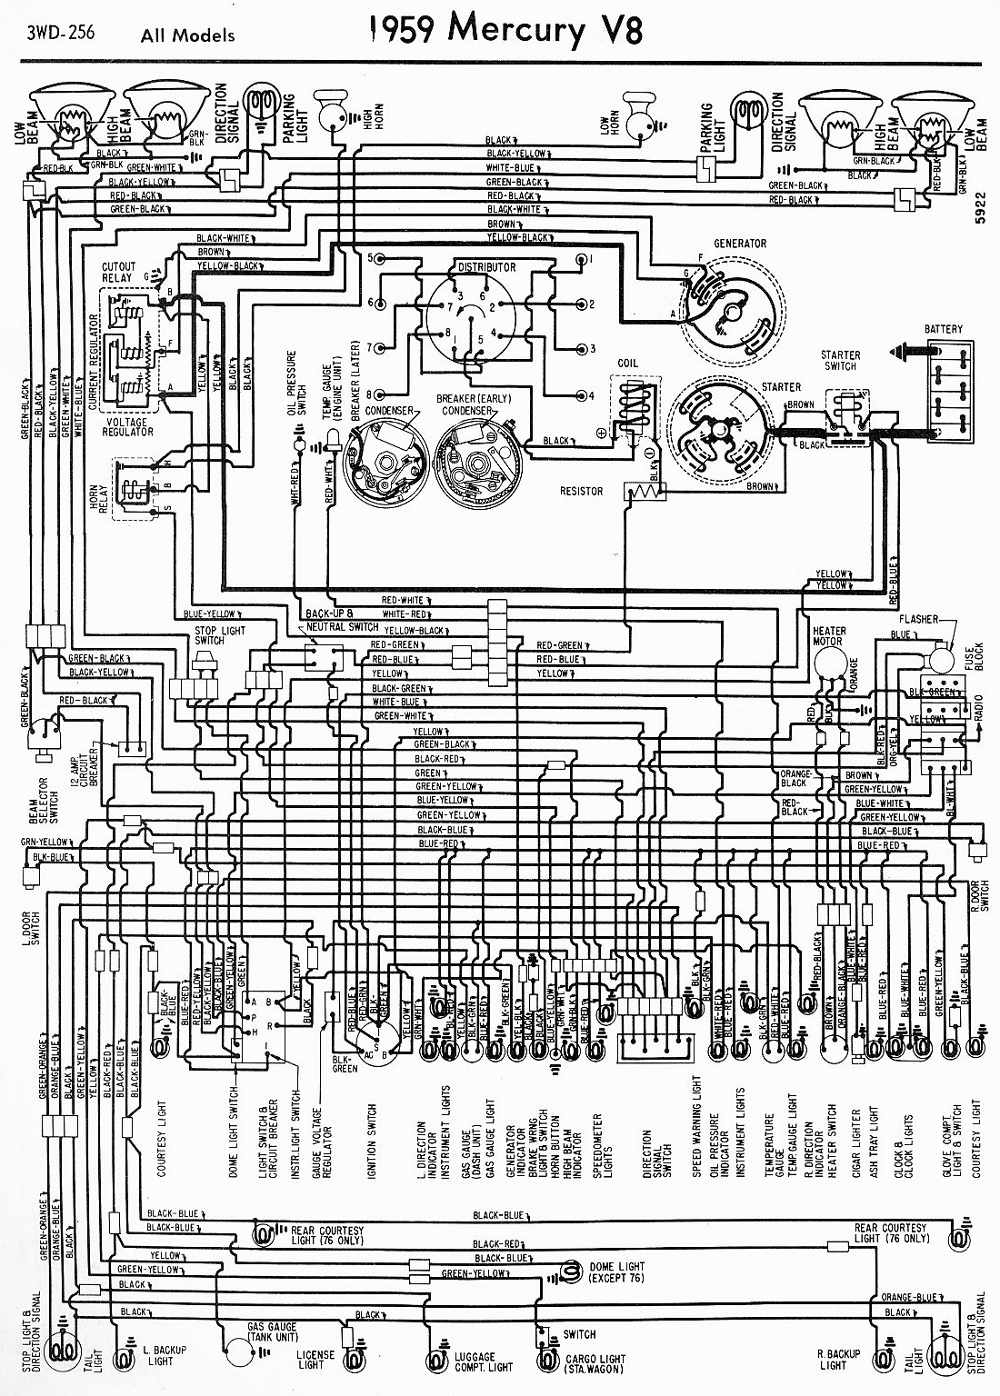 circuit wiring solution 1959 mercury v8 all models wiring diagram 1959 mercury v8 all models wiring [ 1000 x 1396 Pixel ]